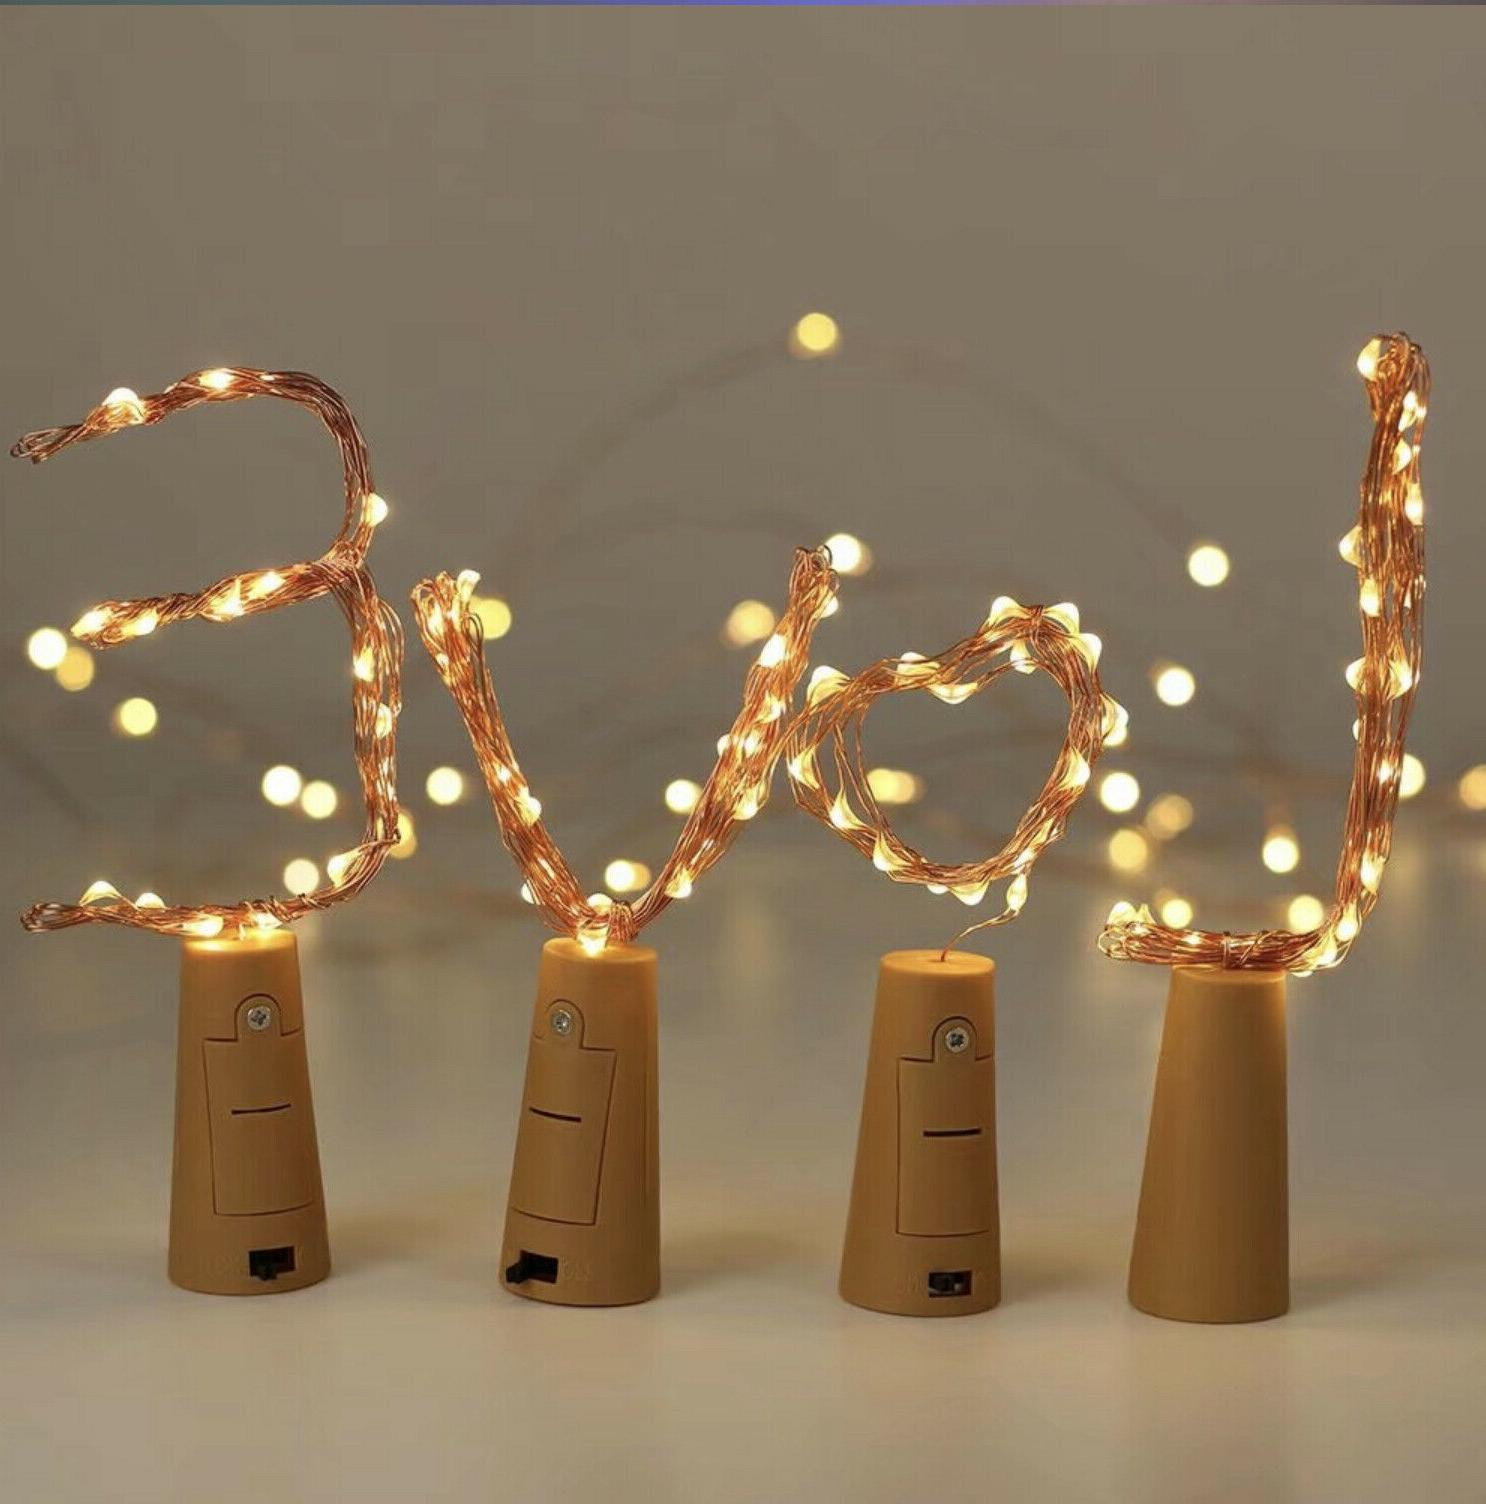 Fairy String Lights 20 LED Battery Party